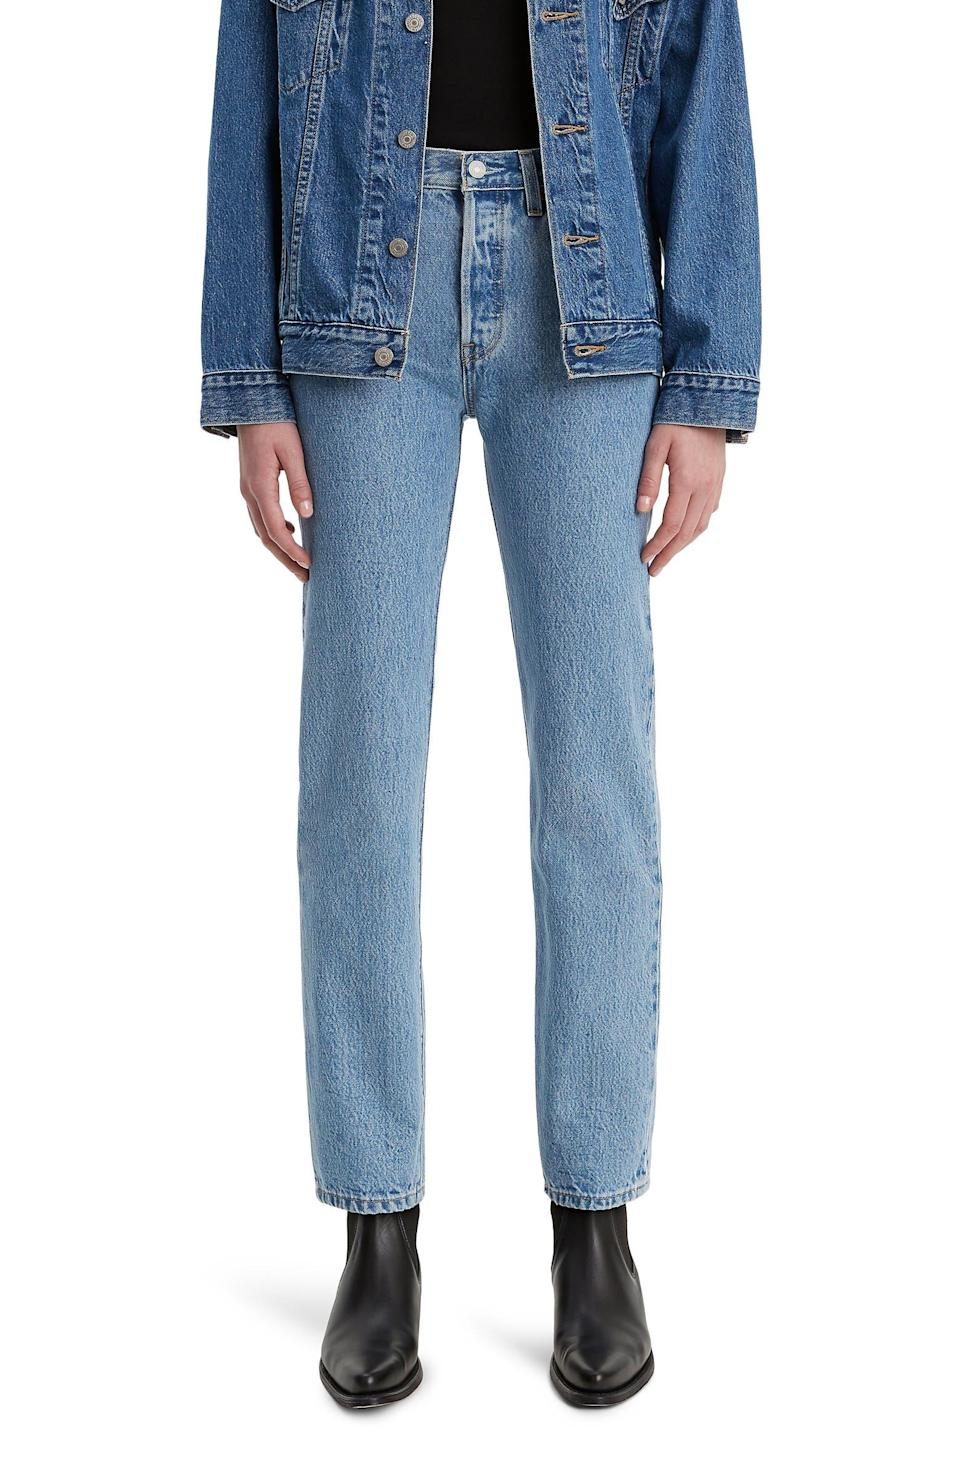 """<h2>Levi's 501® High Waist Straight Leg Jeans 34% Off</h2><br>""""Levi's are my denim brand of choice. I usually go for the wedgie fit, but this style will look great with boots in the fall."""" <em>– Kate Spencer, Updates Market Editor</em><br><br><em>Shop</em> <strong><em><a href=""""https://www.nordstrom.com/brands/levissupsup--1169"""" rel=""""nofollow noopener"""" target=""""_blank"""" data-ylk=""""slk:Levi's"""" class=""""link rapid-noclick-resp"""">Levi's</a></em></strong><br><br><strong>Levi's</strong> 501® High Waist Straight Leg Jeans, $, available at <a href=""""https://go.skimresources.com/?id=30283X879131&url=https%3A%2F%2Fwww.nordstrom.com%2Fs%2Flevis-501-high-waist-straight-leg-jeans-luxor-indigo%2F5794287"""" rel=""""nofollow noopener"""" target=""""_blank"""" data-ylk=""""slk:Nordstrom"""" class=""""link rapid-noclick-resp"""">Nordstrom</a>"""